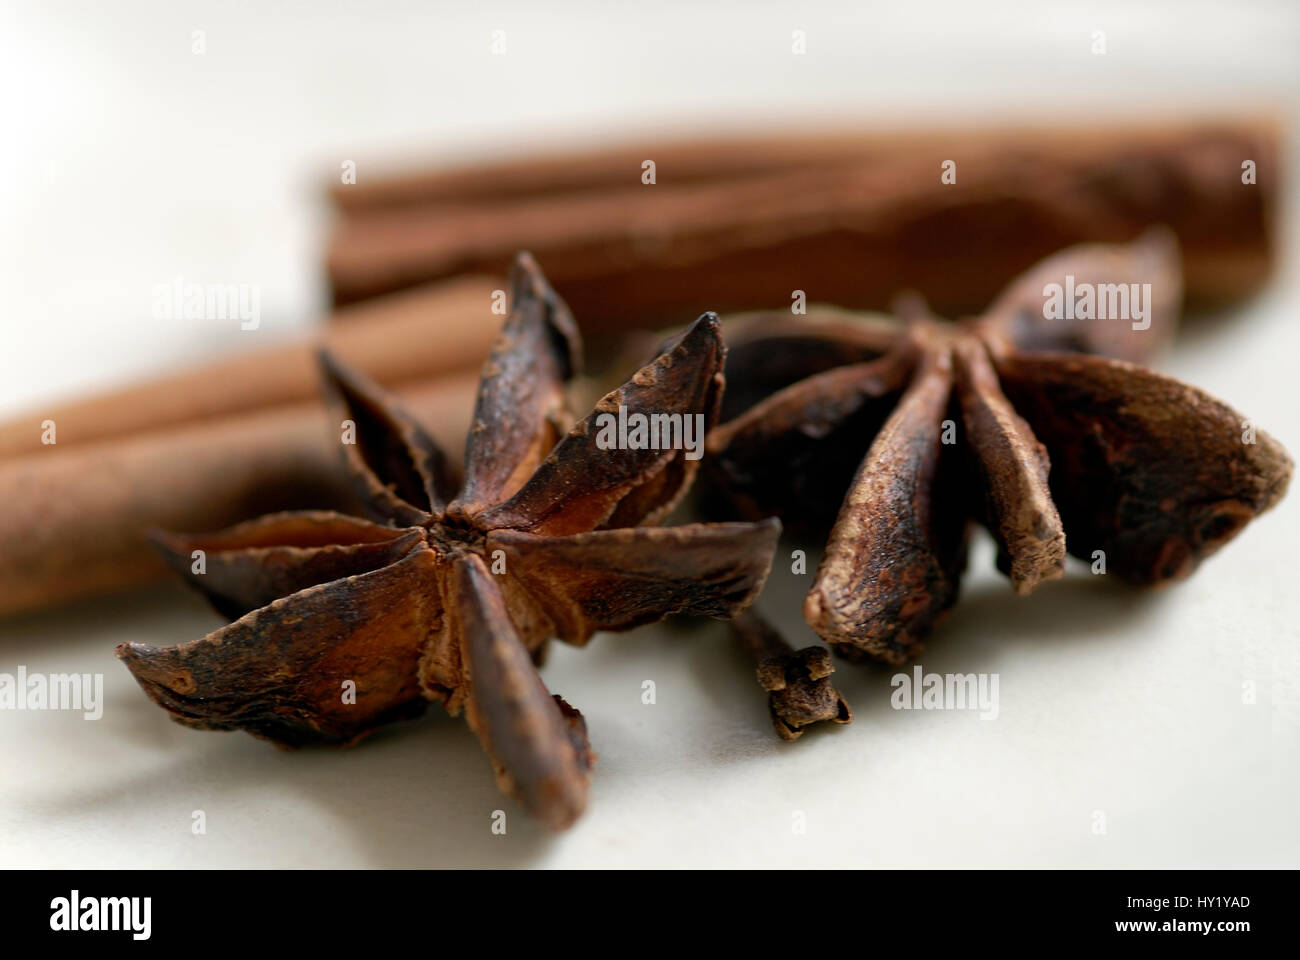 This Macro Stock Photo shows two pieces of star anise in the foreground and a few sticks of cinnamon in the background. - Stock Image